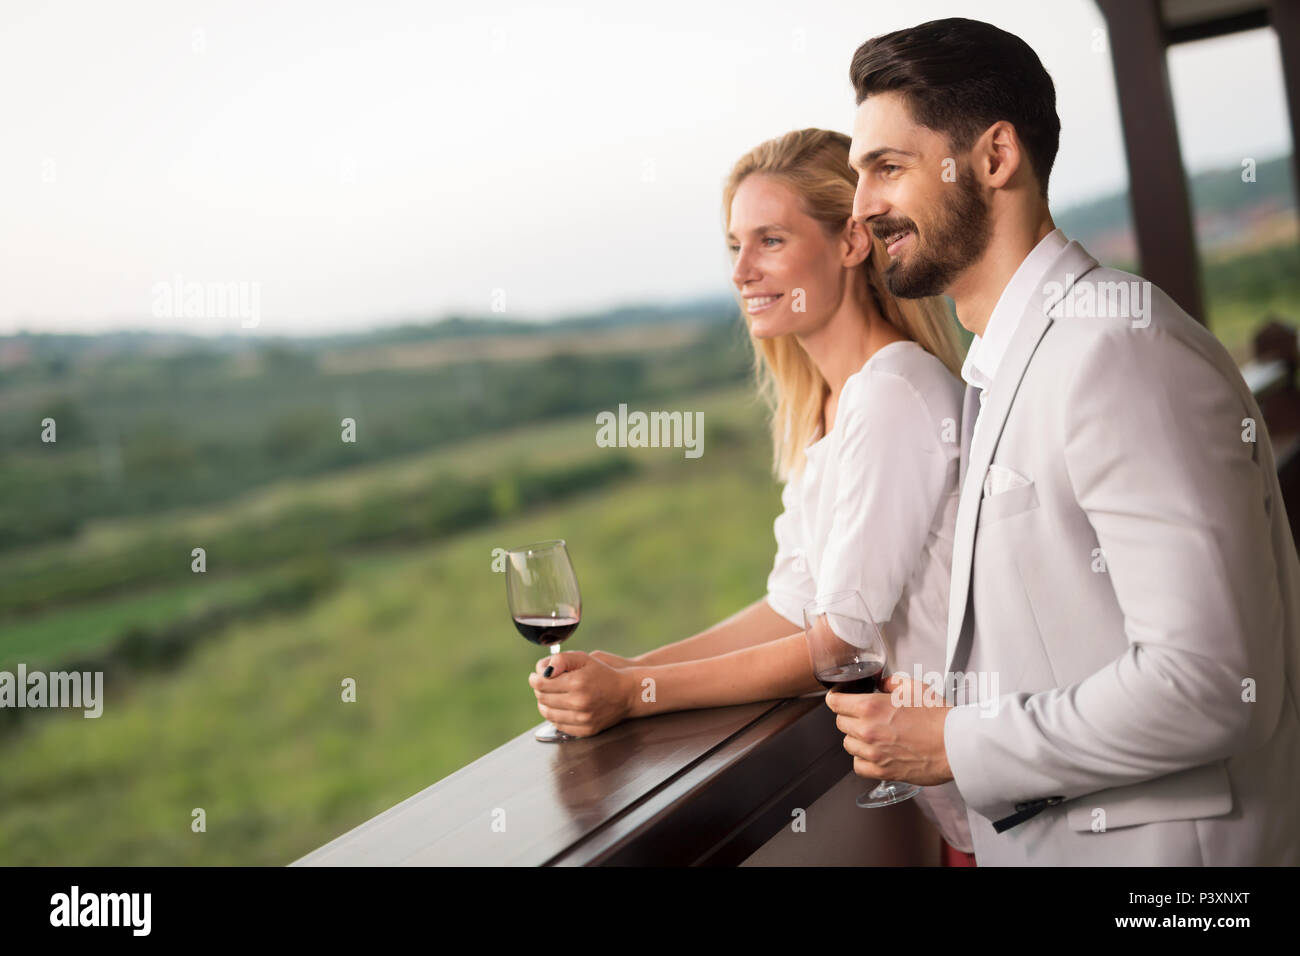 Couple toasting and celebrating with wine - Stock Image